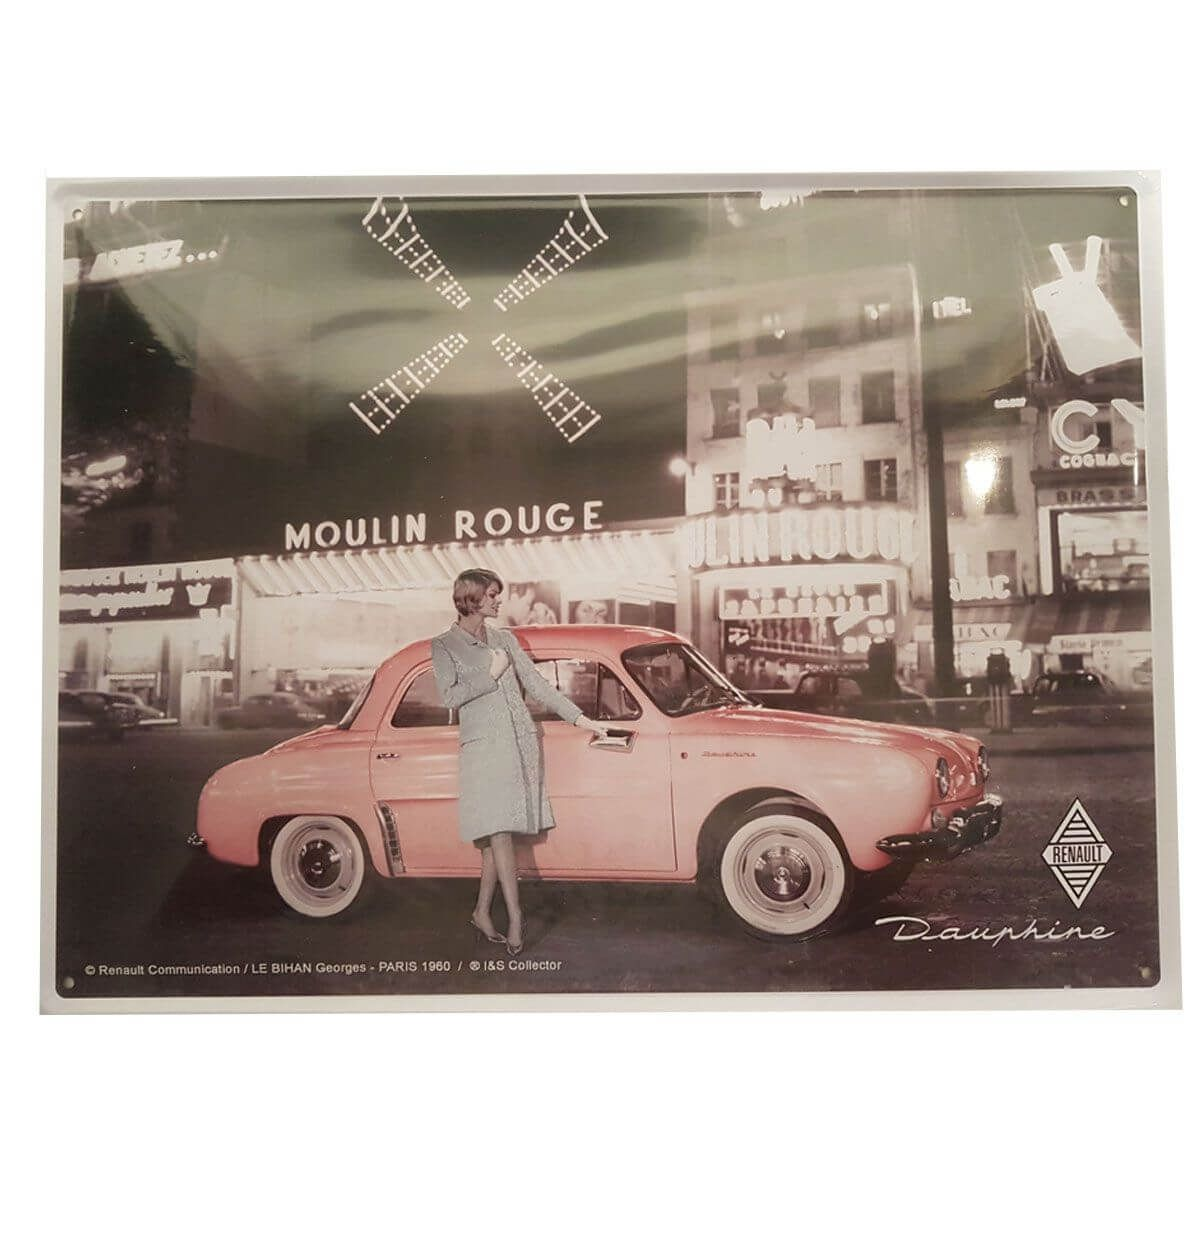 Wandplaat Renault Dauphine Moulin Rouge